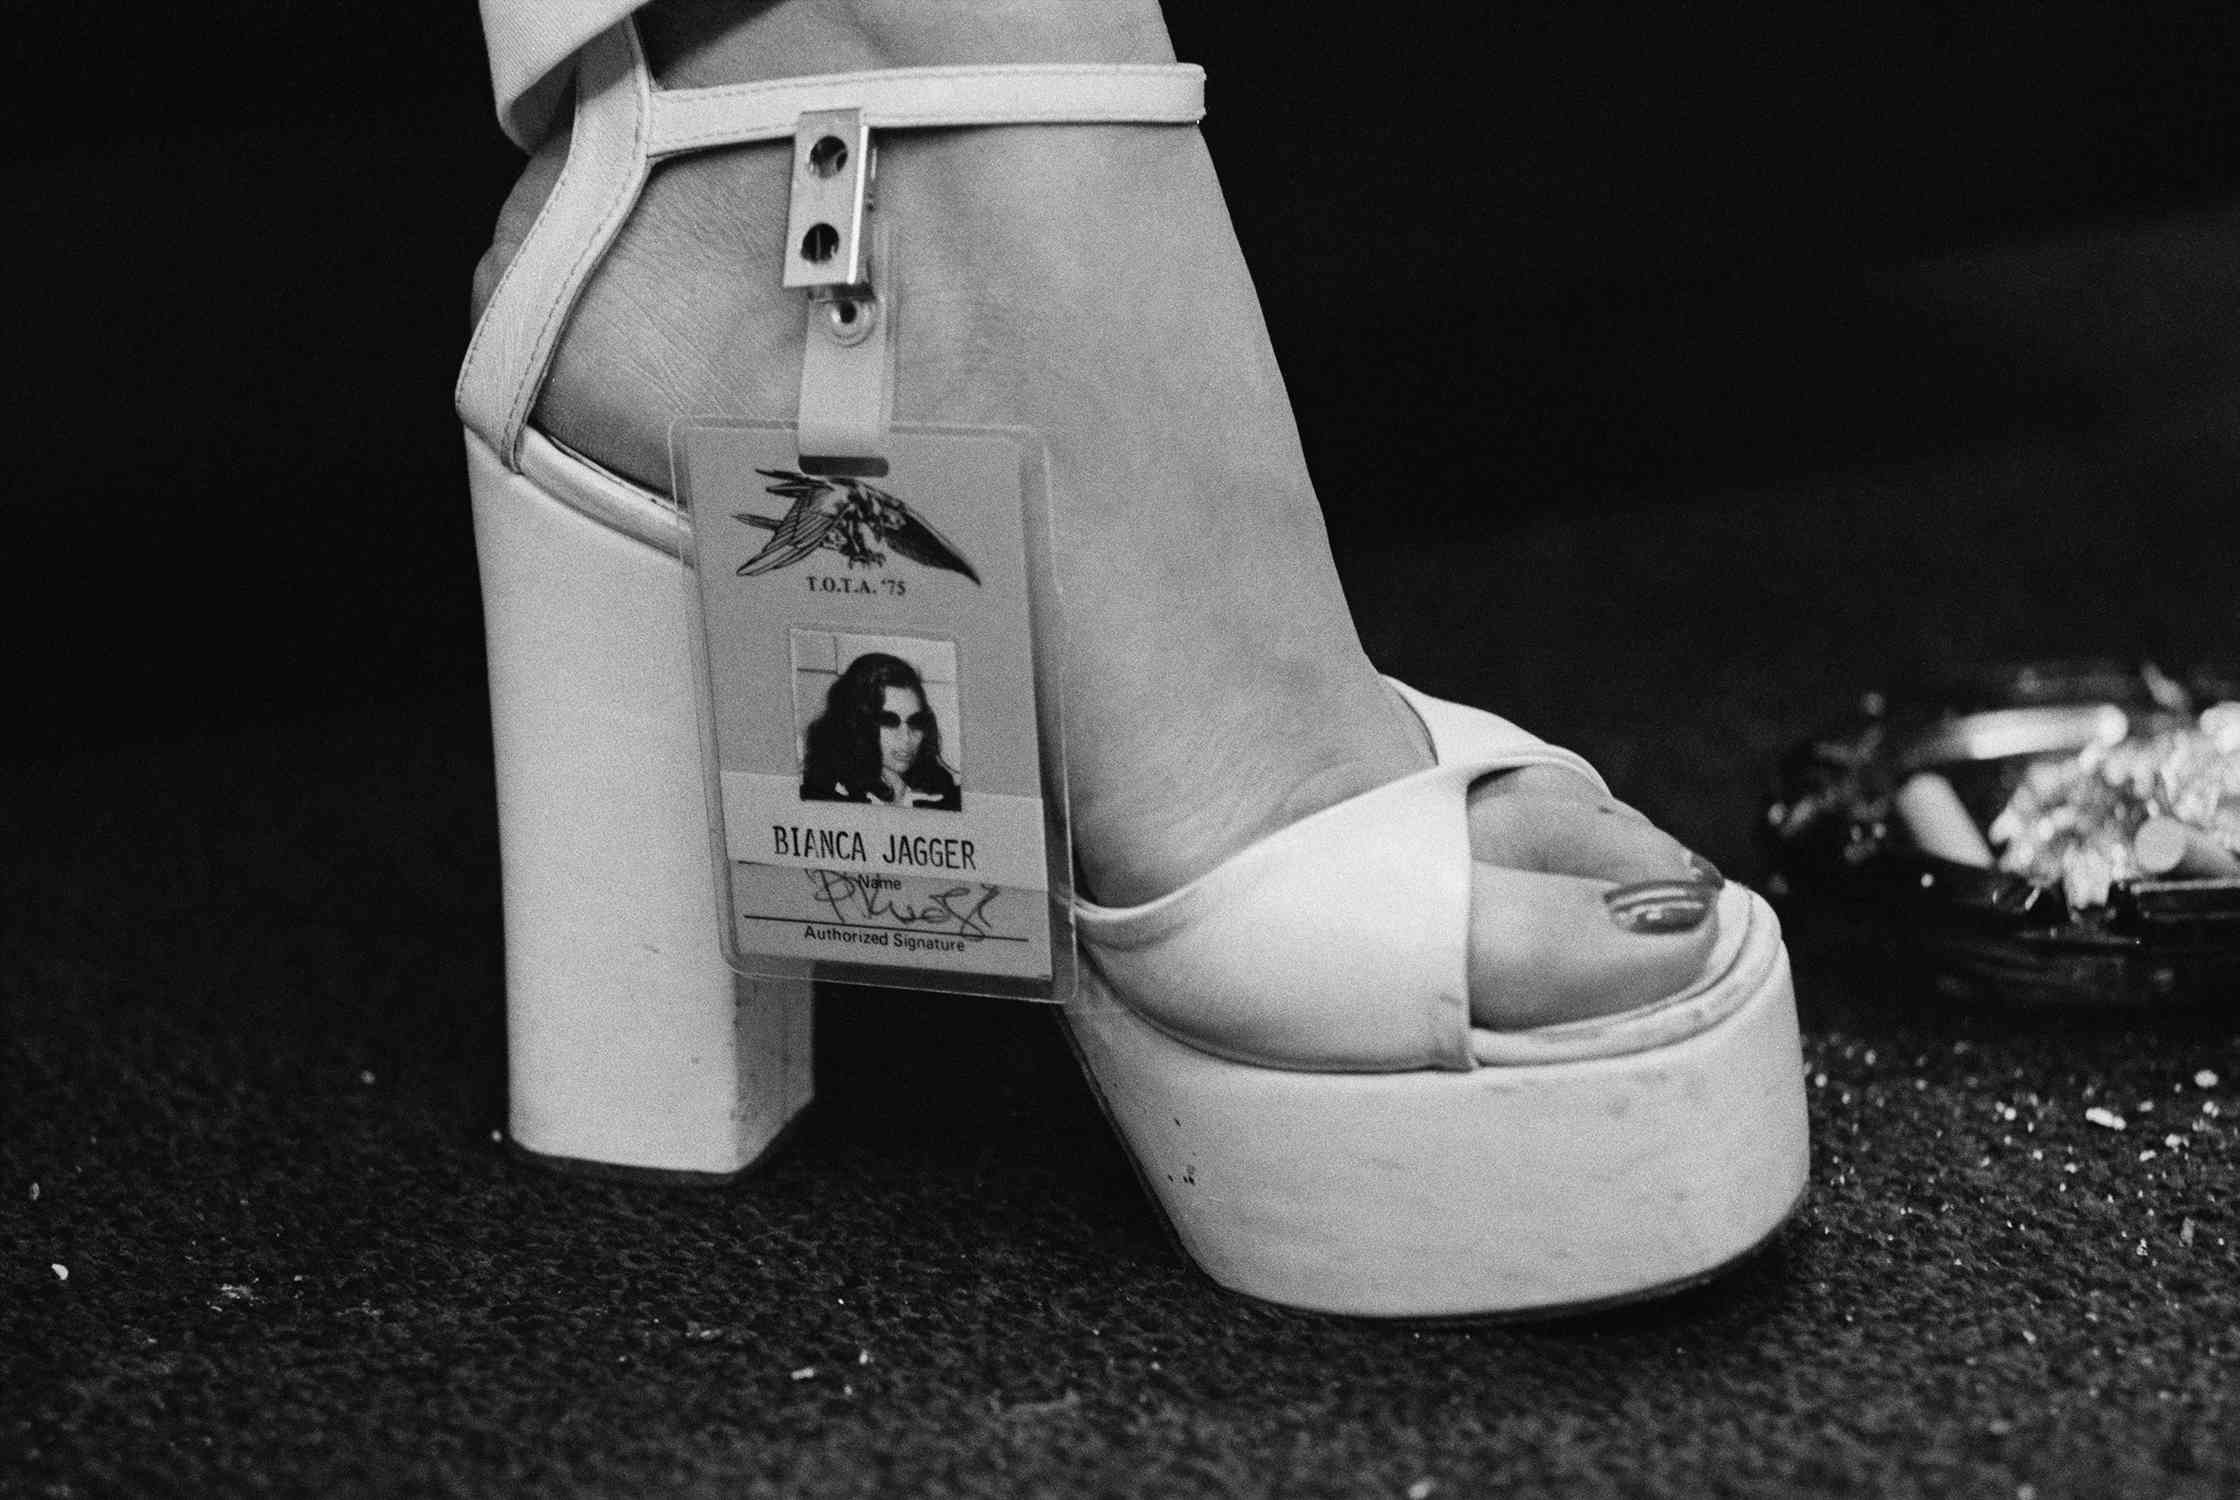 b9833e841d Photo of Bianca Jagger's platform sandal with backstage pass clipped to  ankle strap.